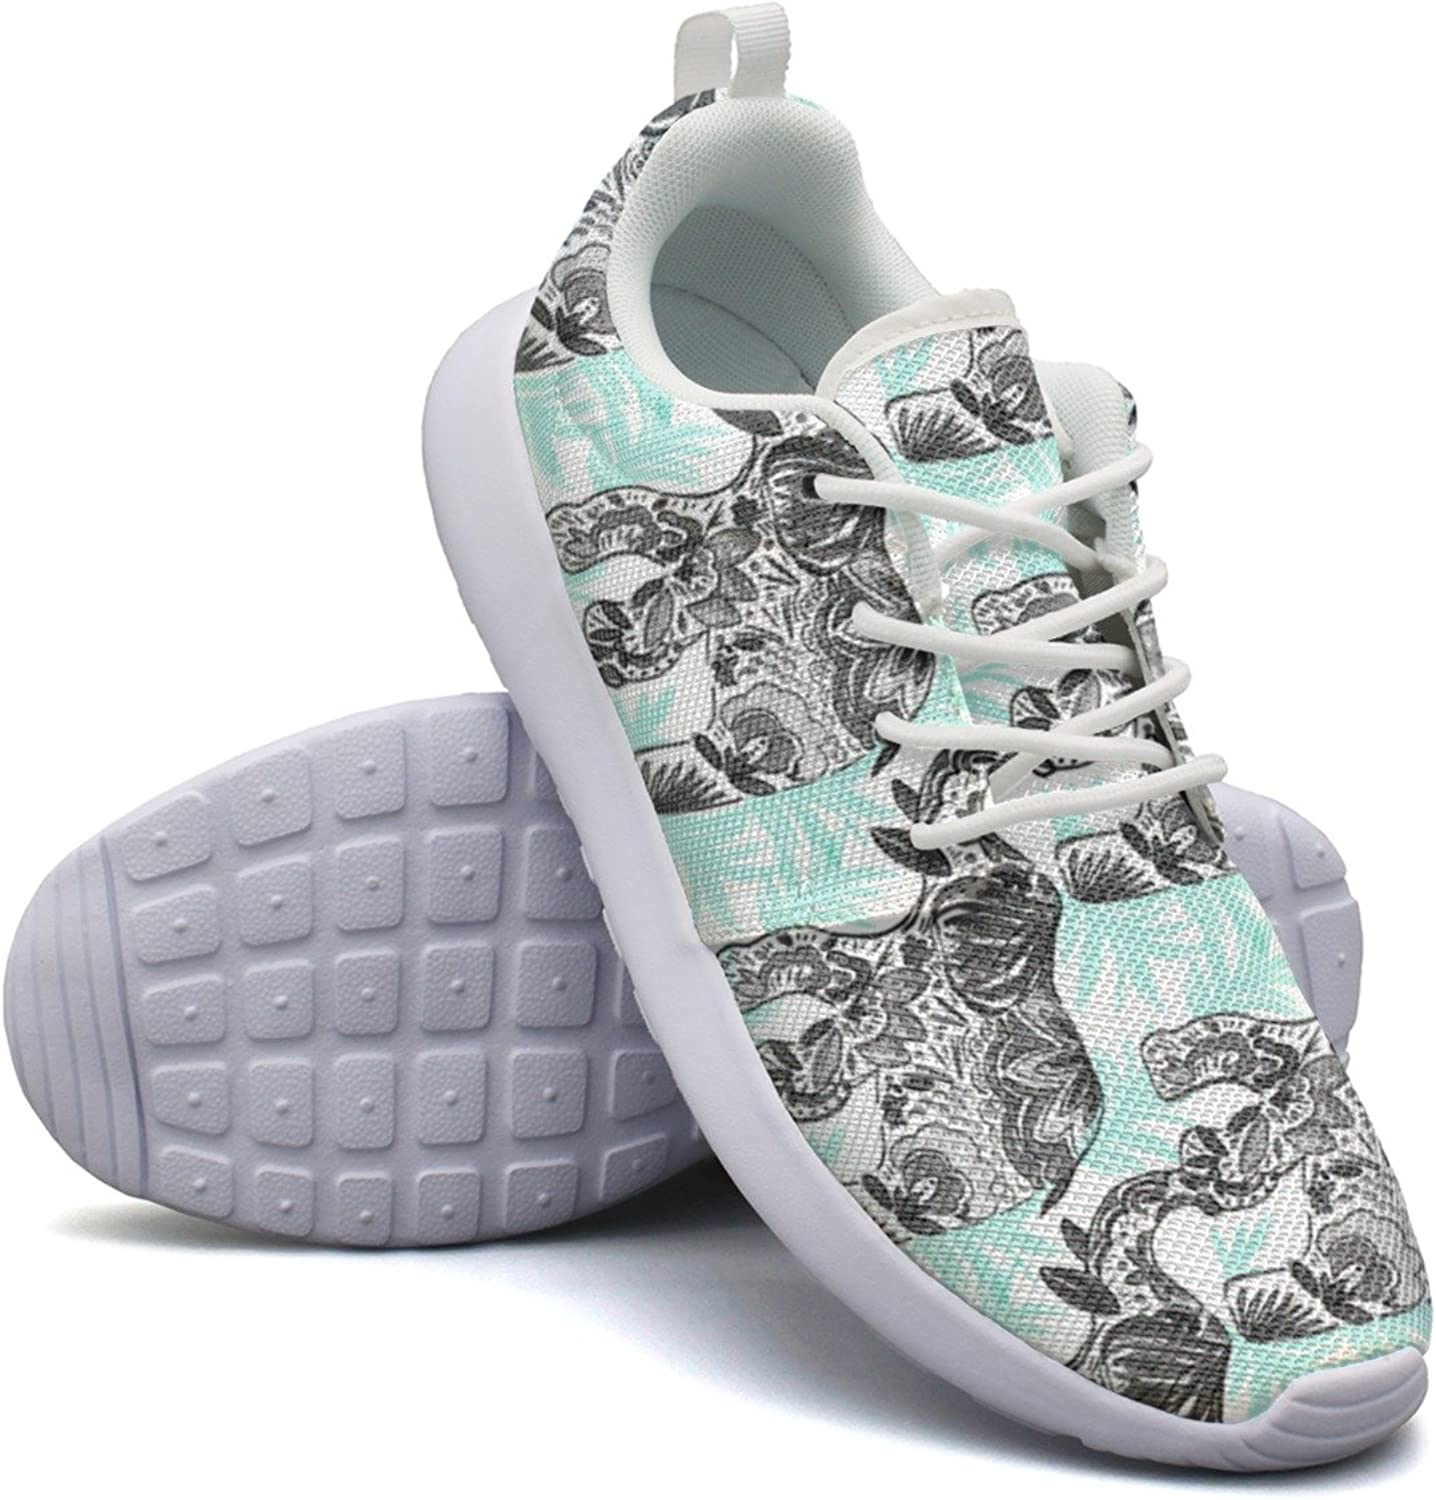 Palm Leaf bluee Elephants Women's Casual Sneakers Flat Athletic New Gym